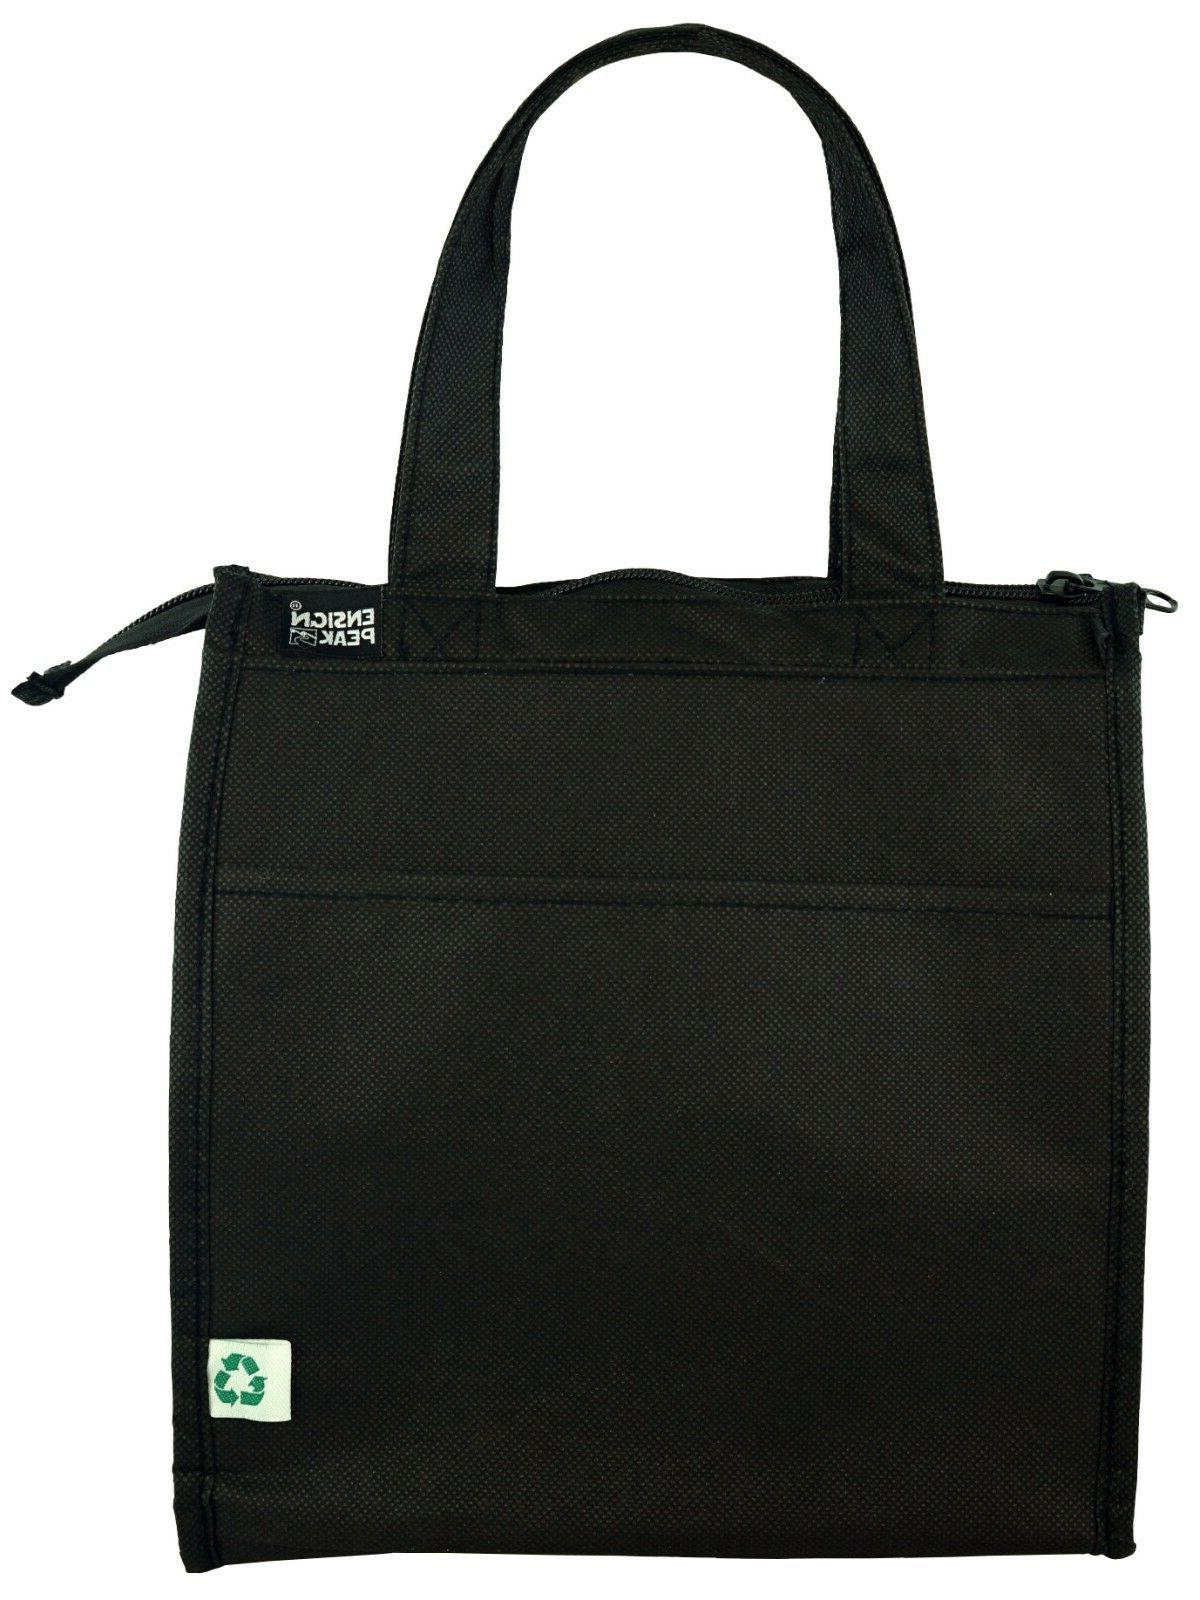 insulated zippered hot and cold cooler tote